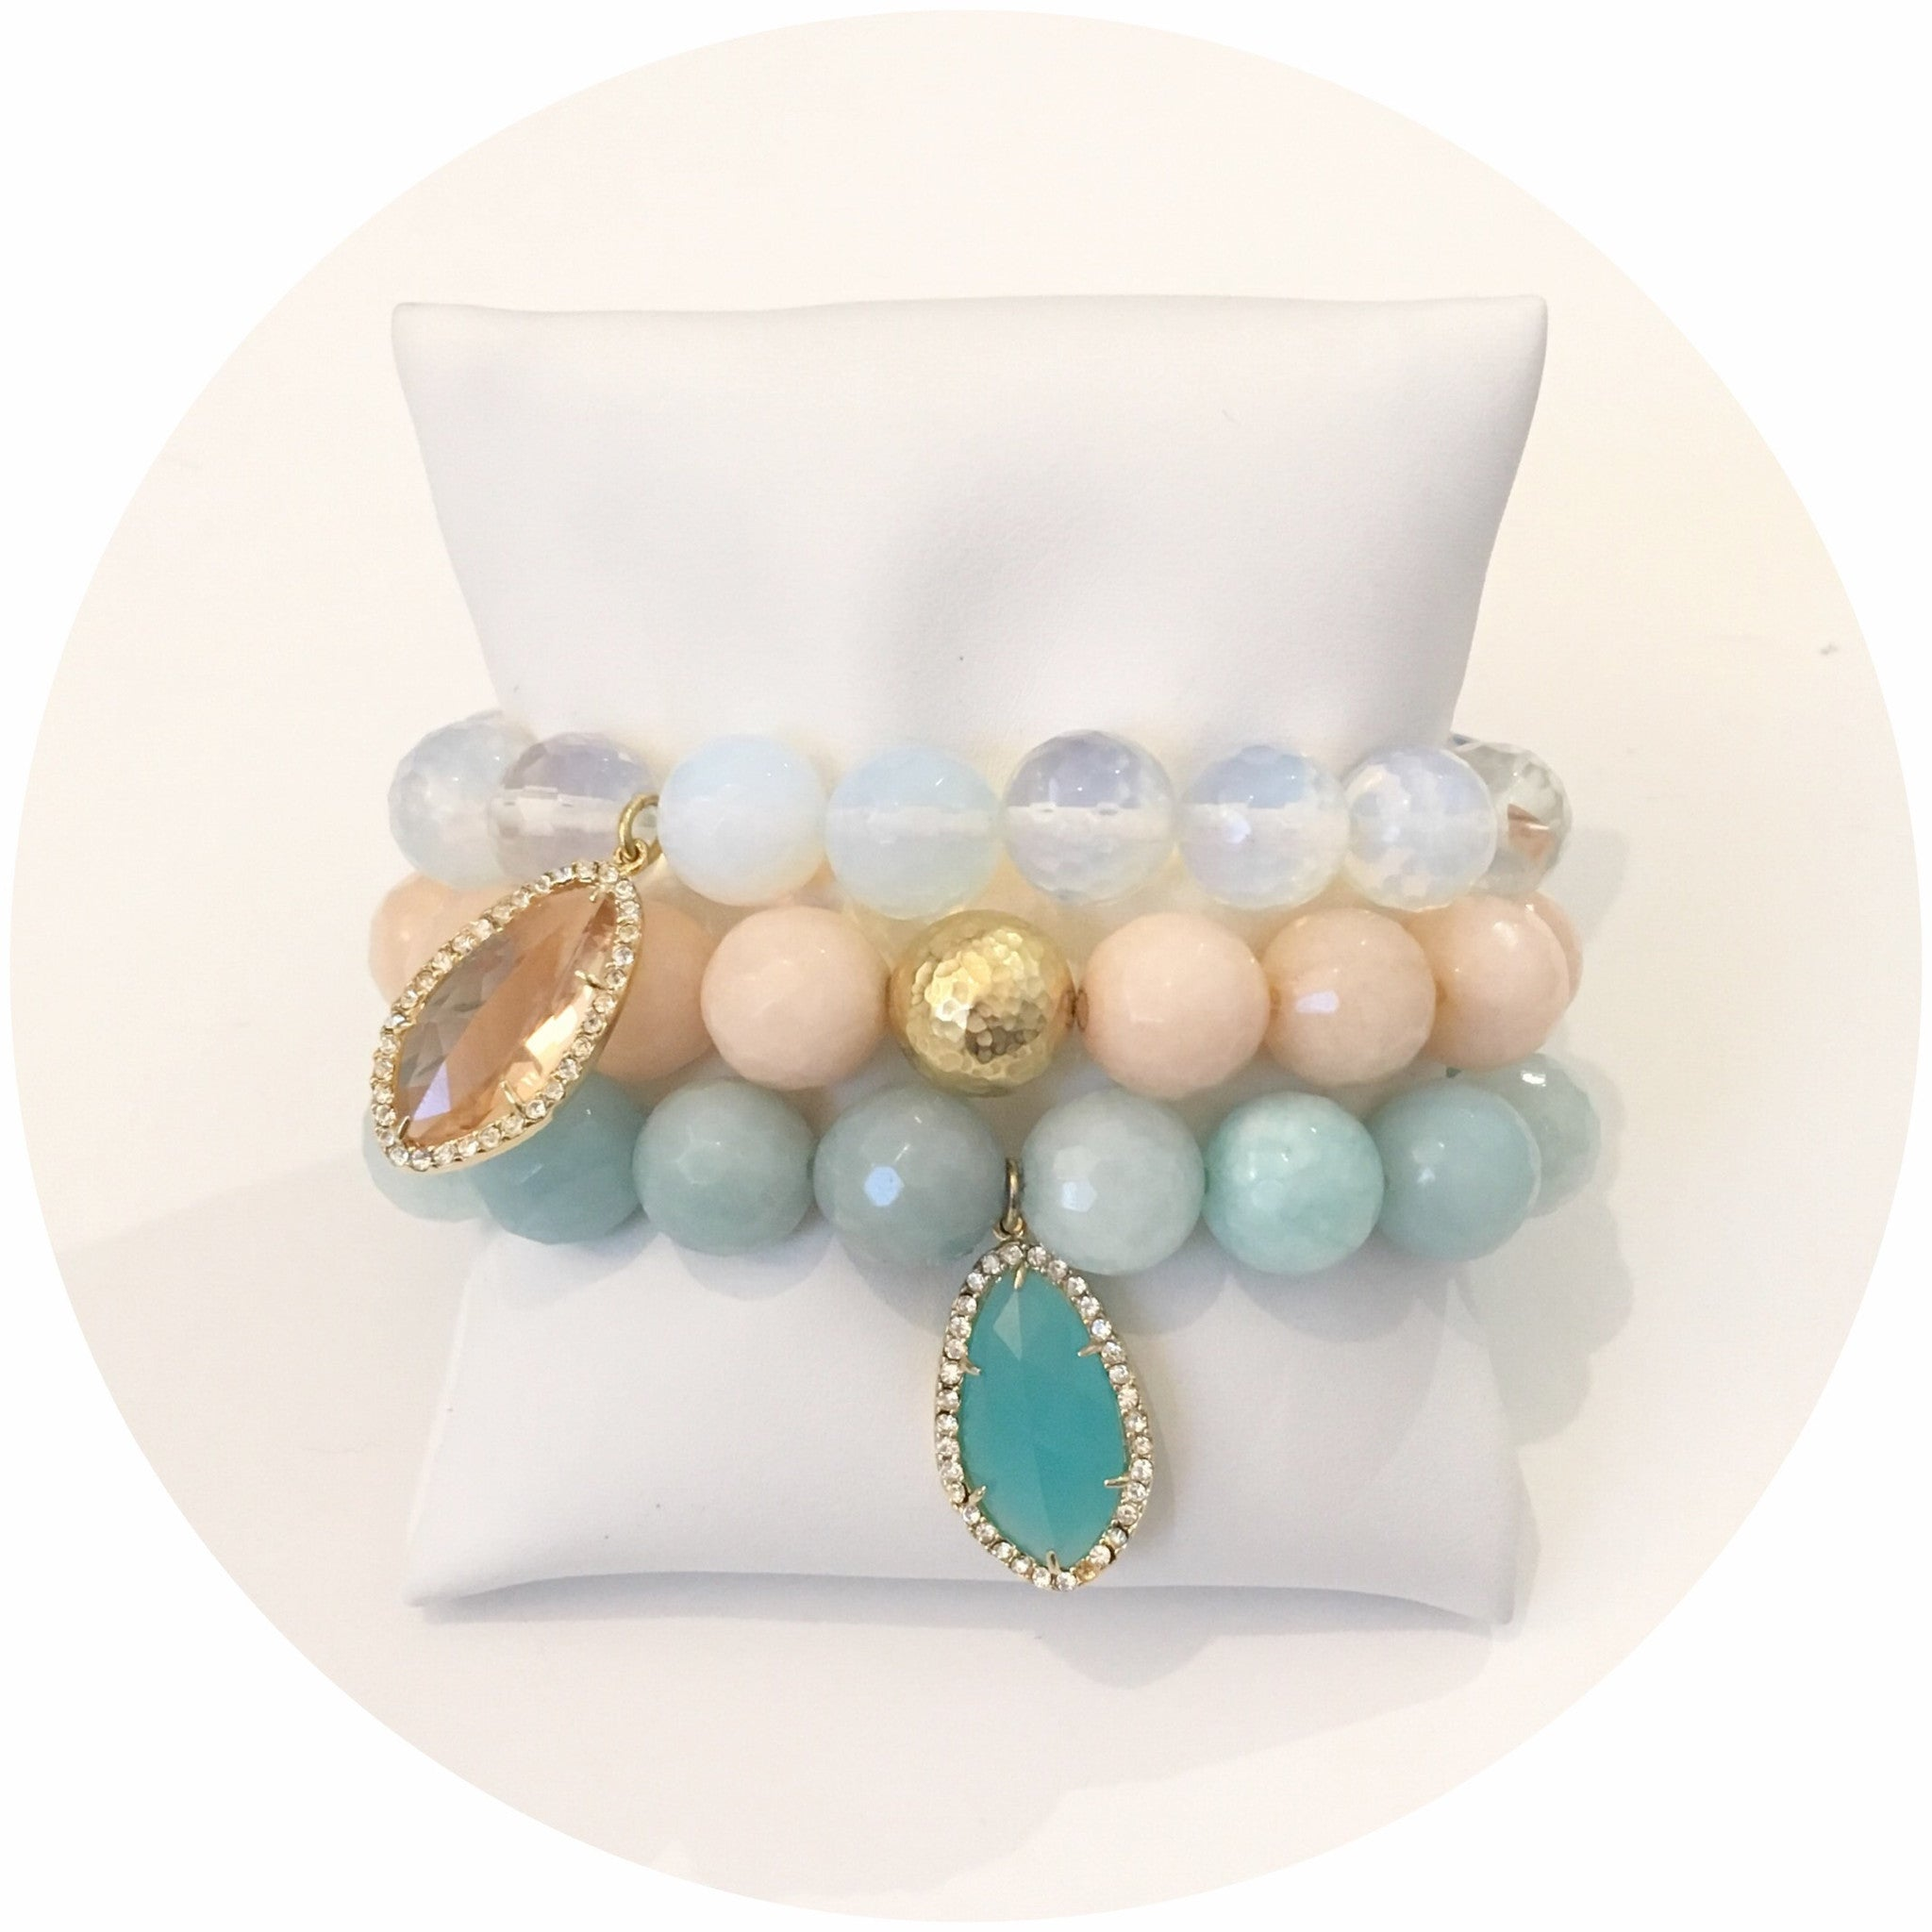 Arm Party #30 - Oriana Lamarca LLC